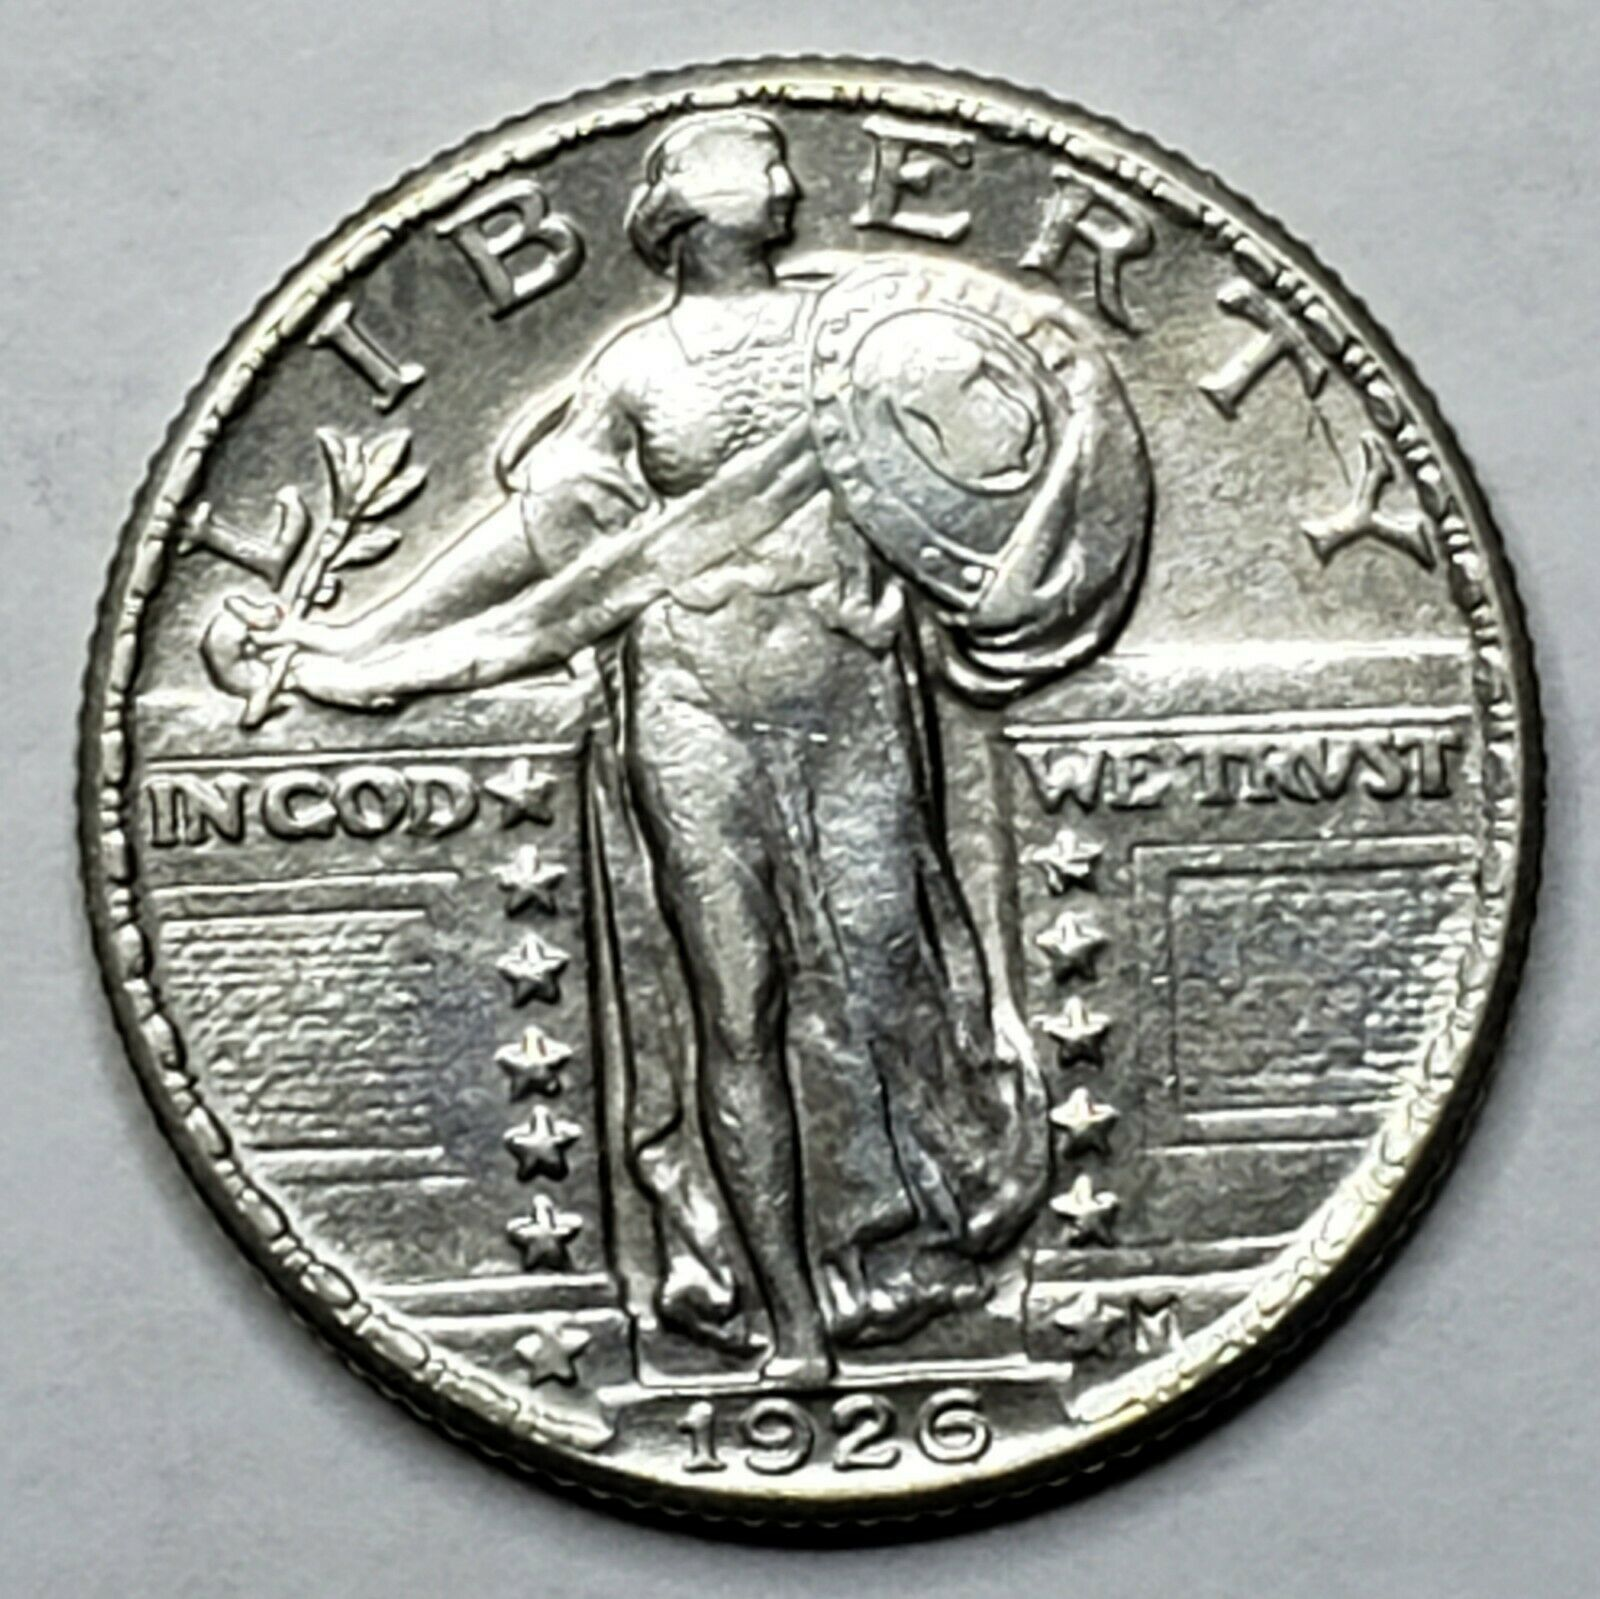 1926 Standing Liberty Silver Quarter Coin Lot 519-78